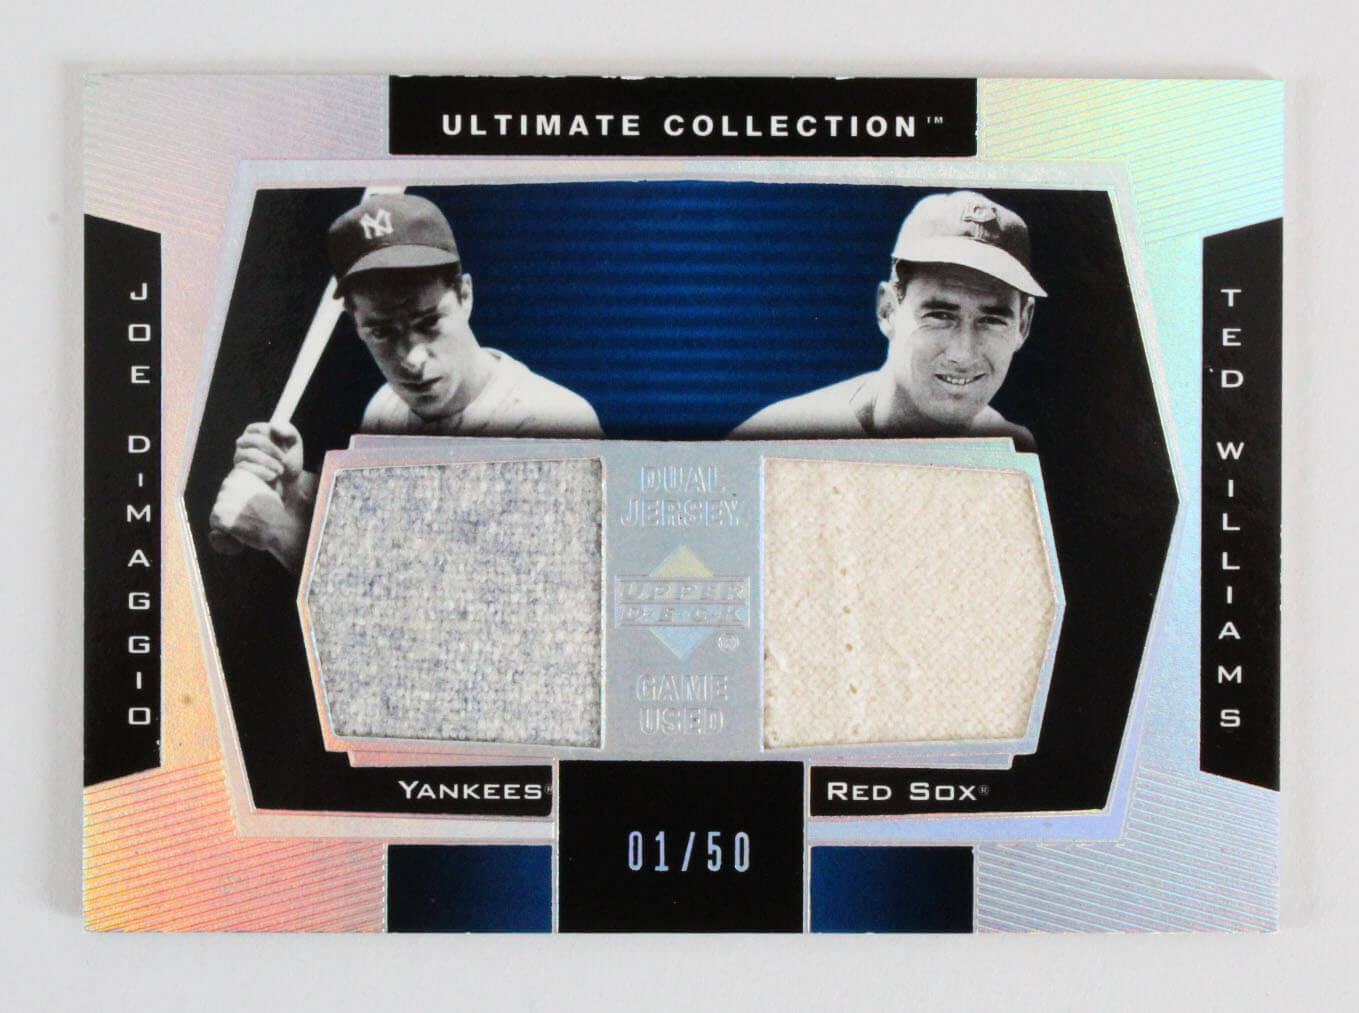 2003 Ultimate Collection Ted Williams & Joe DiMaggio Game-Used Jersey Card DJ-DW 1/50 Yankees Red Sox